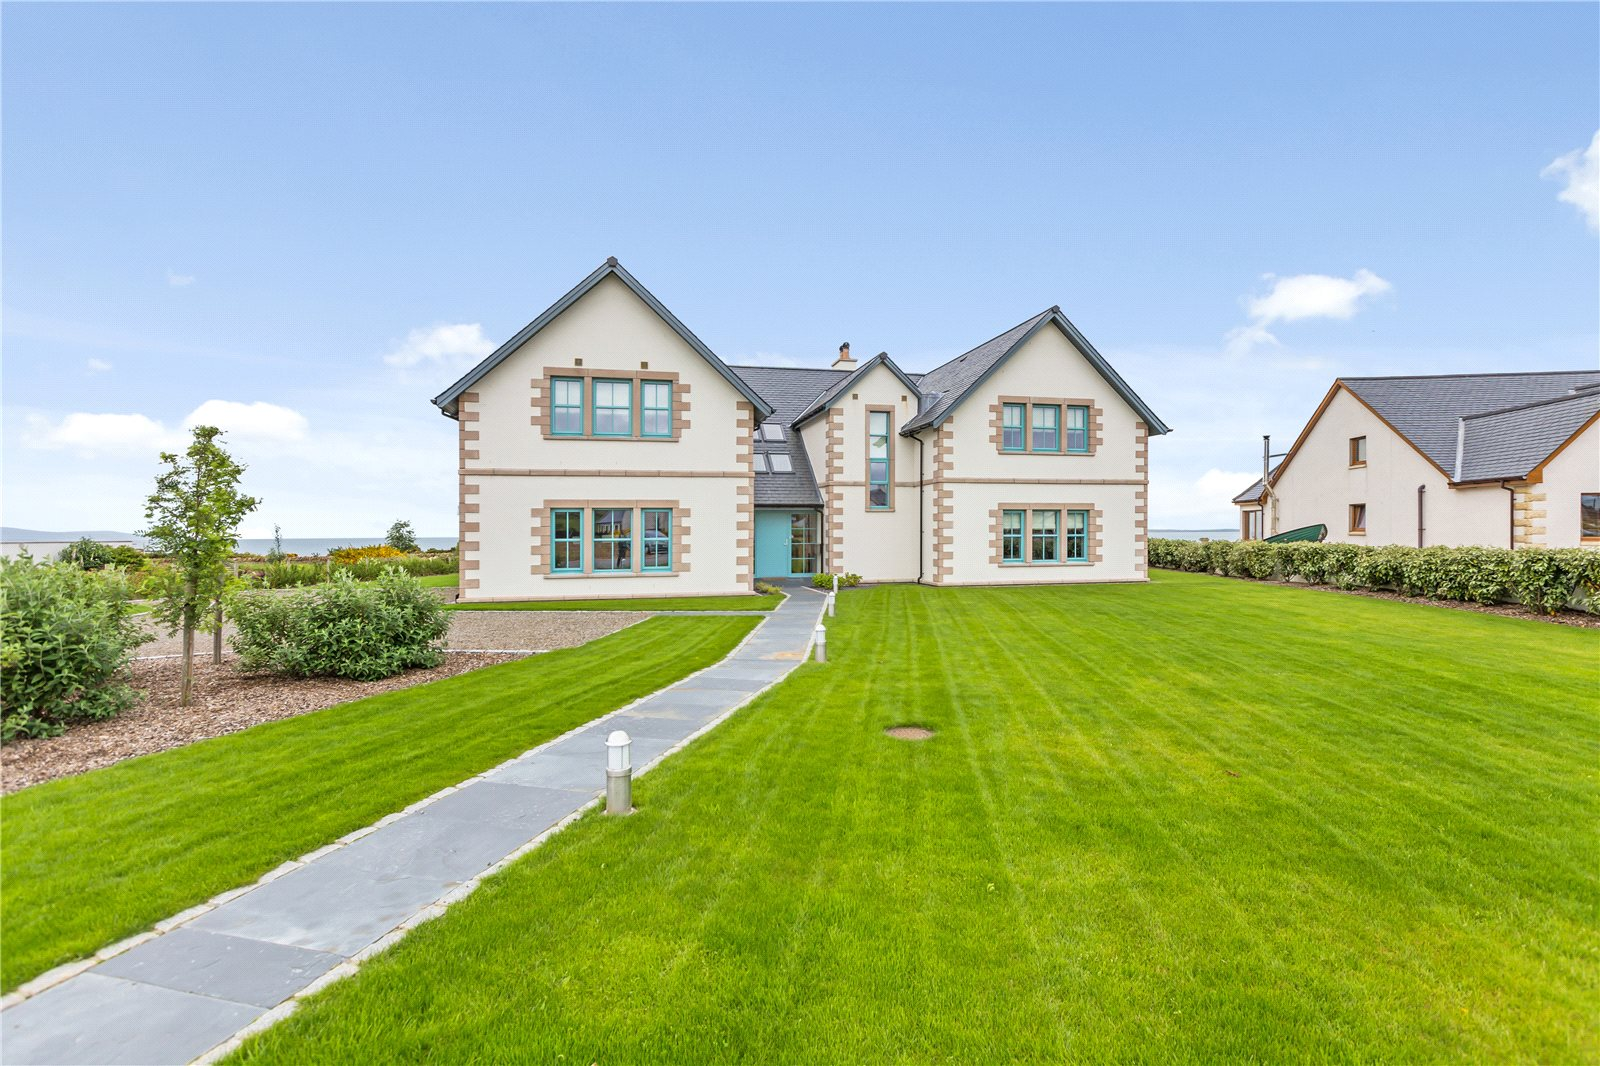 Single Family Home for Sale at Earls Cross Gardens, Dornoch, Sutherland, IV25 Scotland